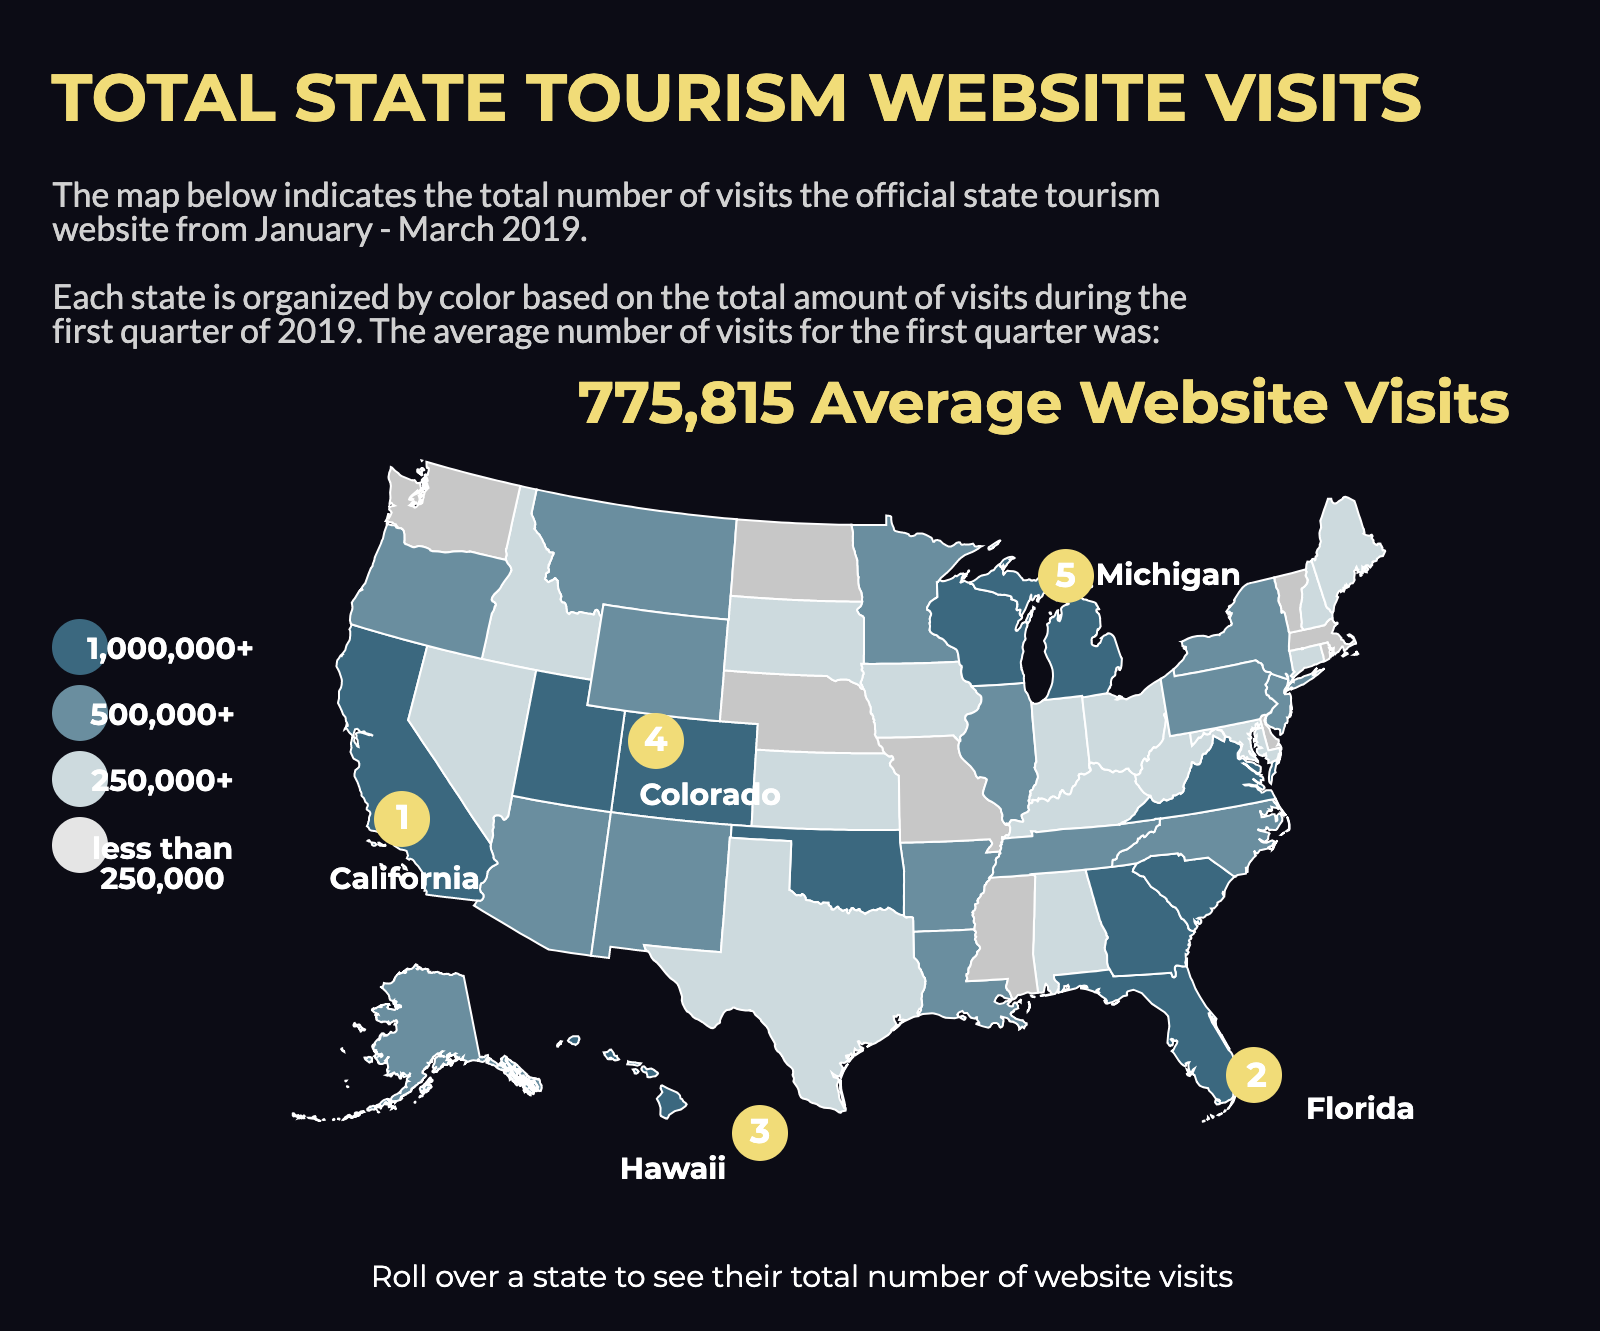 Total state website tourism visits